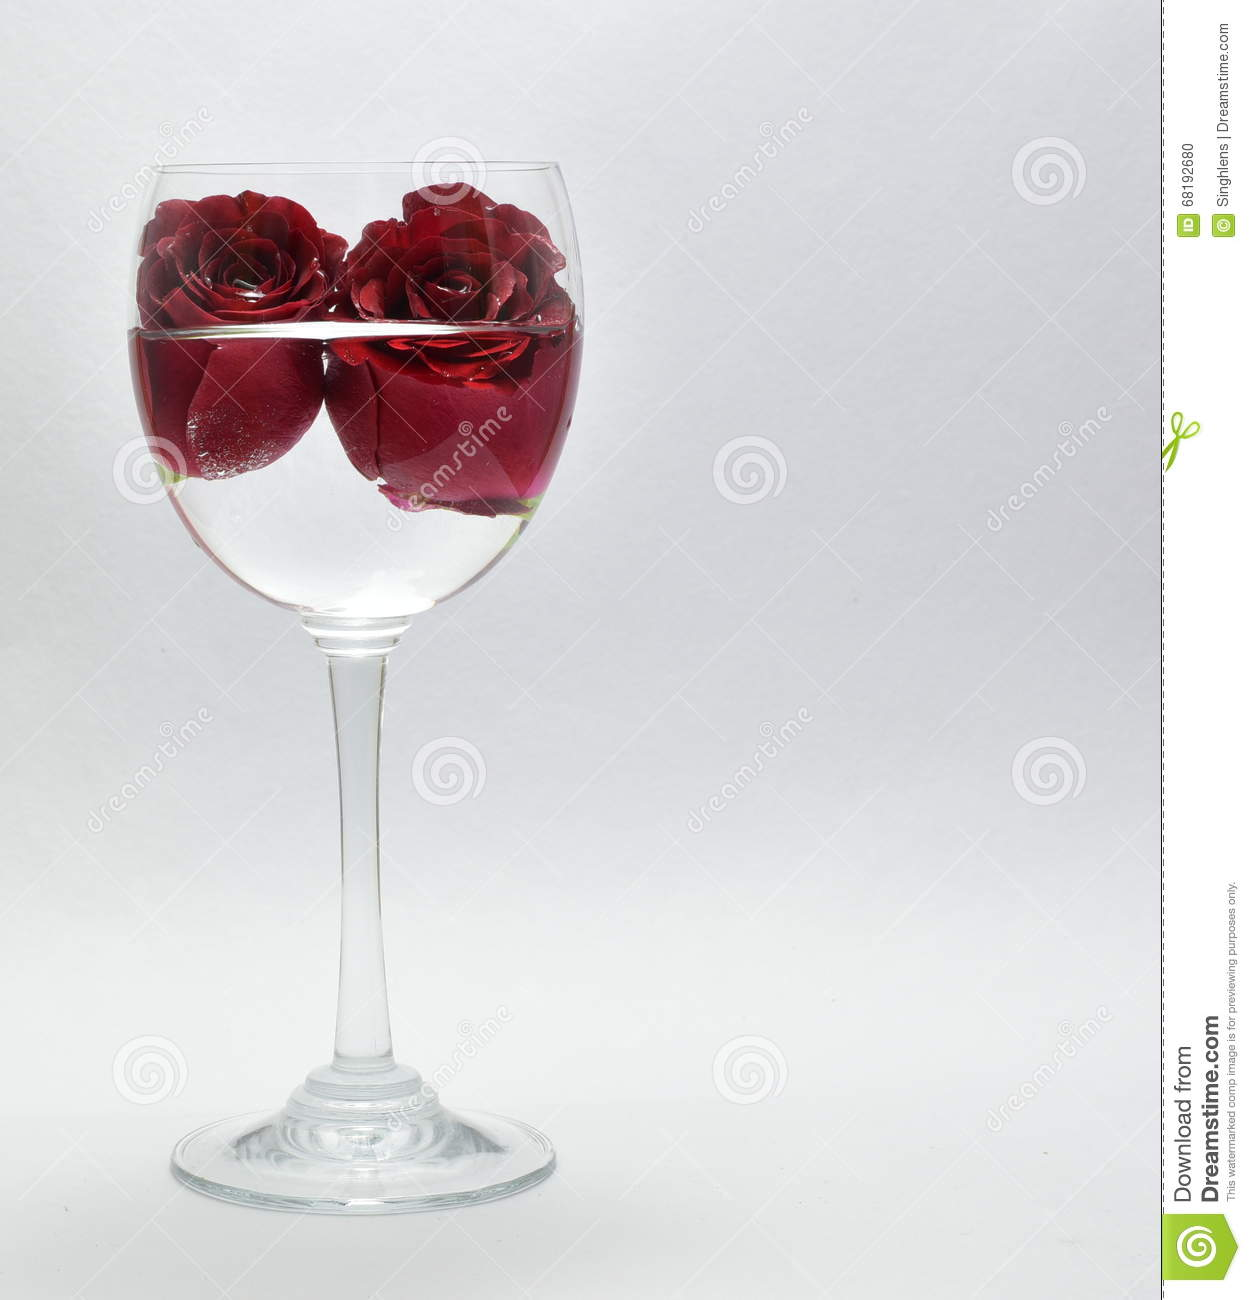 Pretty red roses symbol of love in wine glass stock photo image pretty red roses symbol of love in wine glass biocorpaavc Gallery